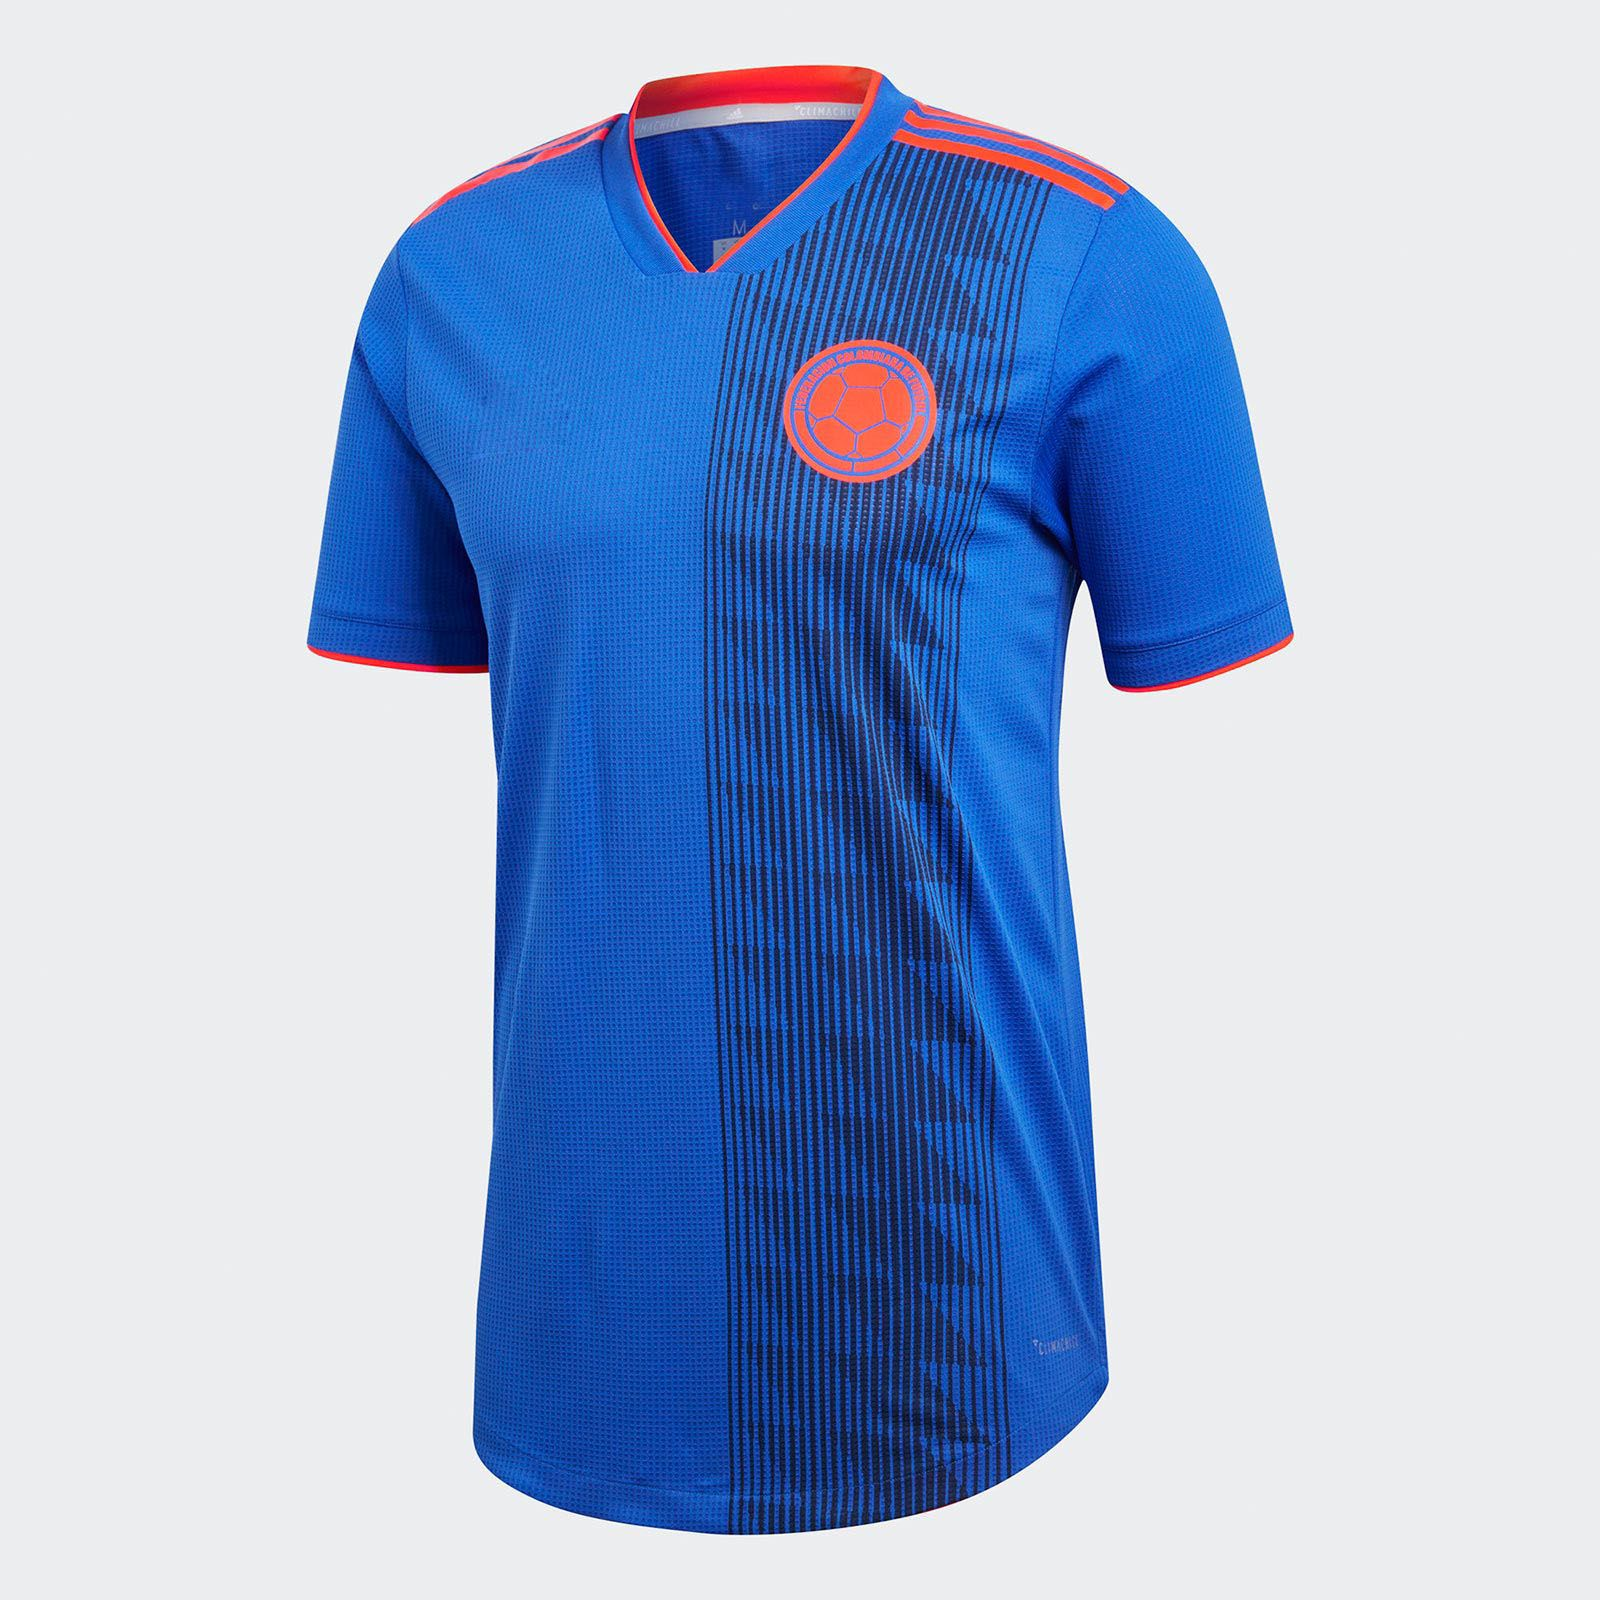 2018 Colombia World Cup Away Jersey  e938bf172